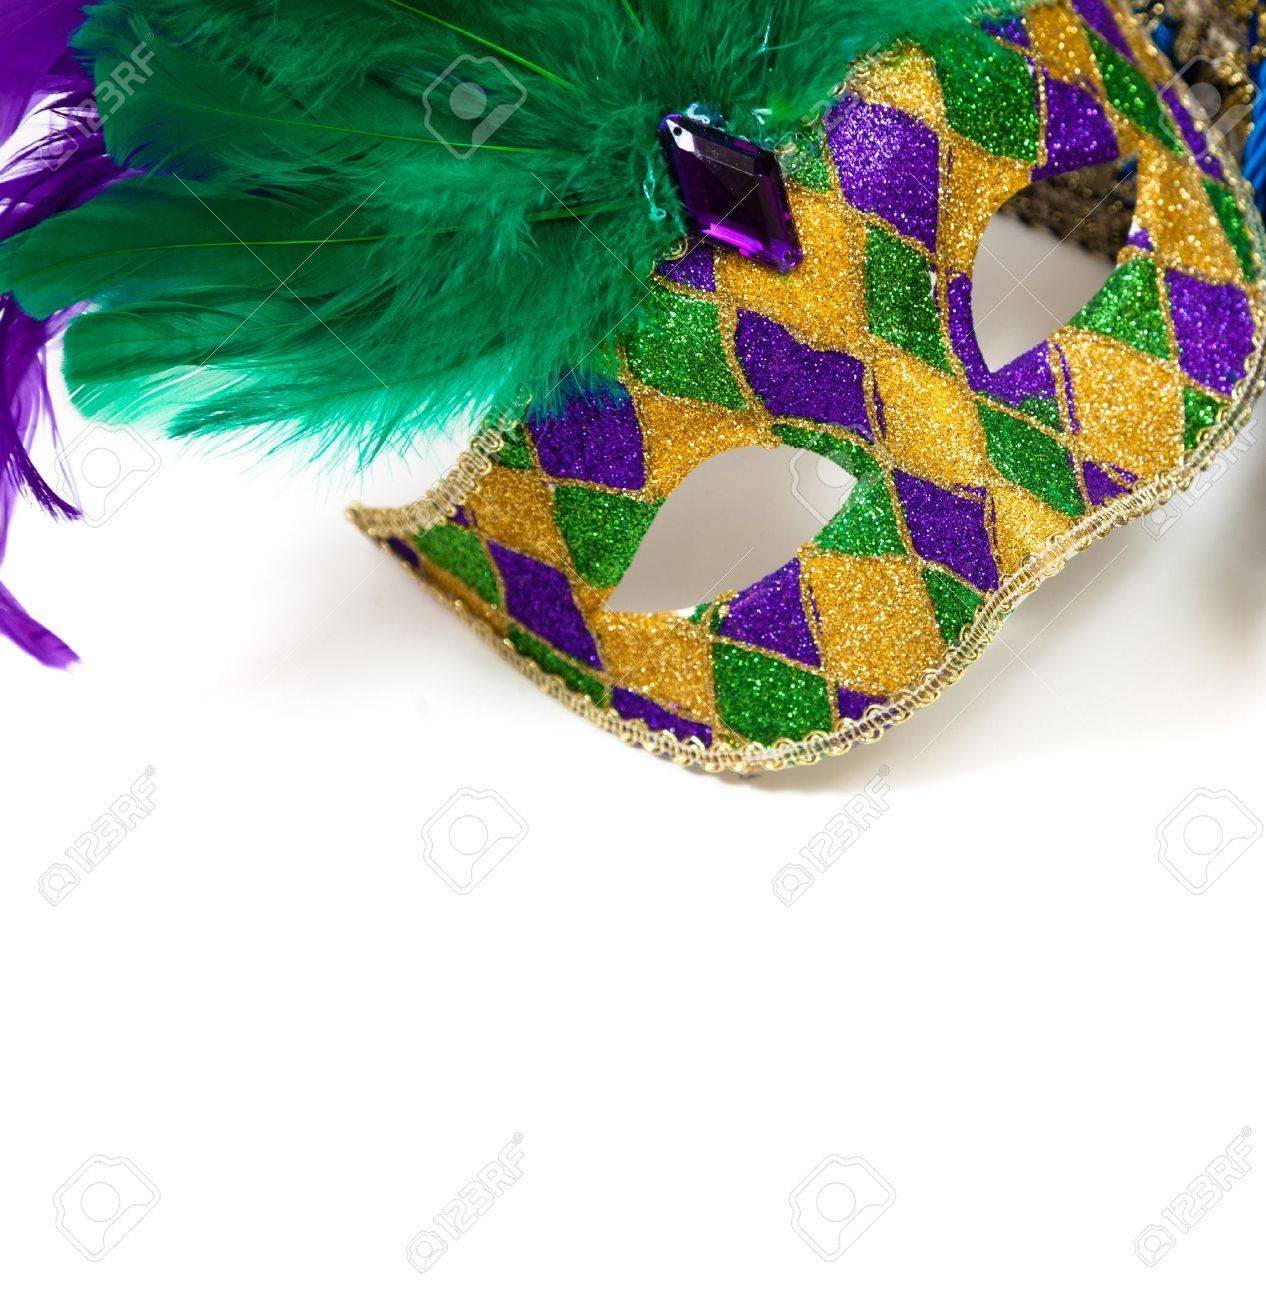 A Glittery Mardi Gras Mask On A White Background With Copyspace 1266x1300